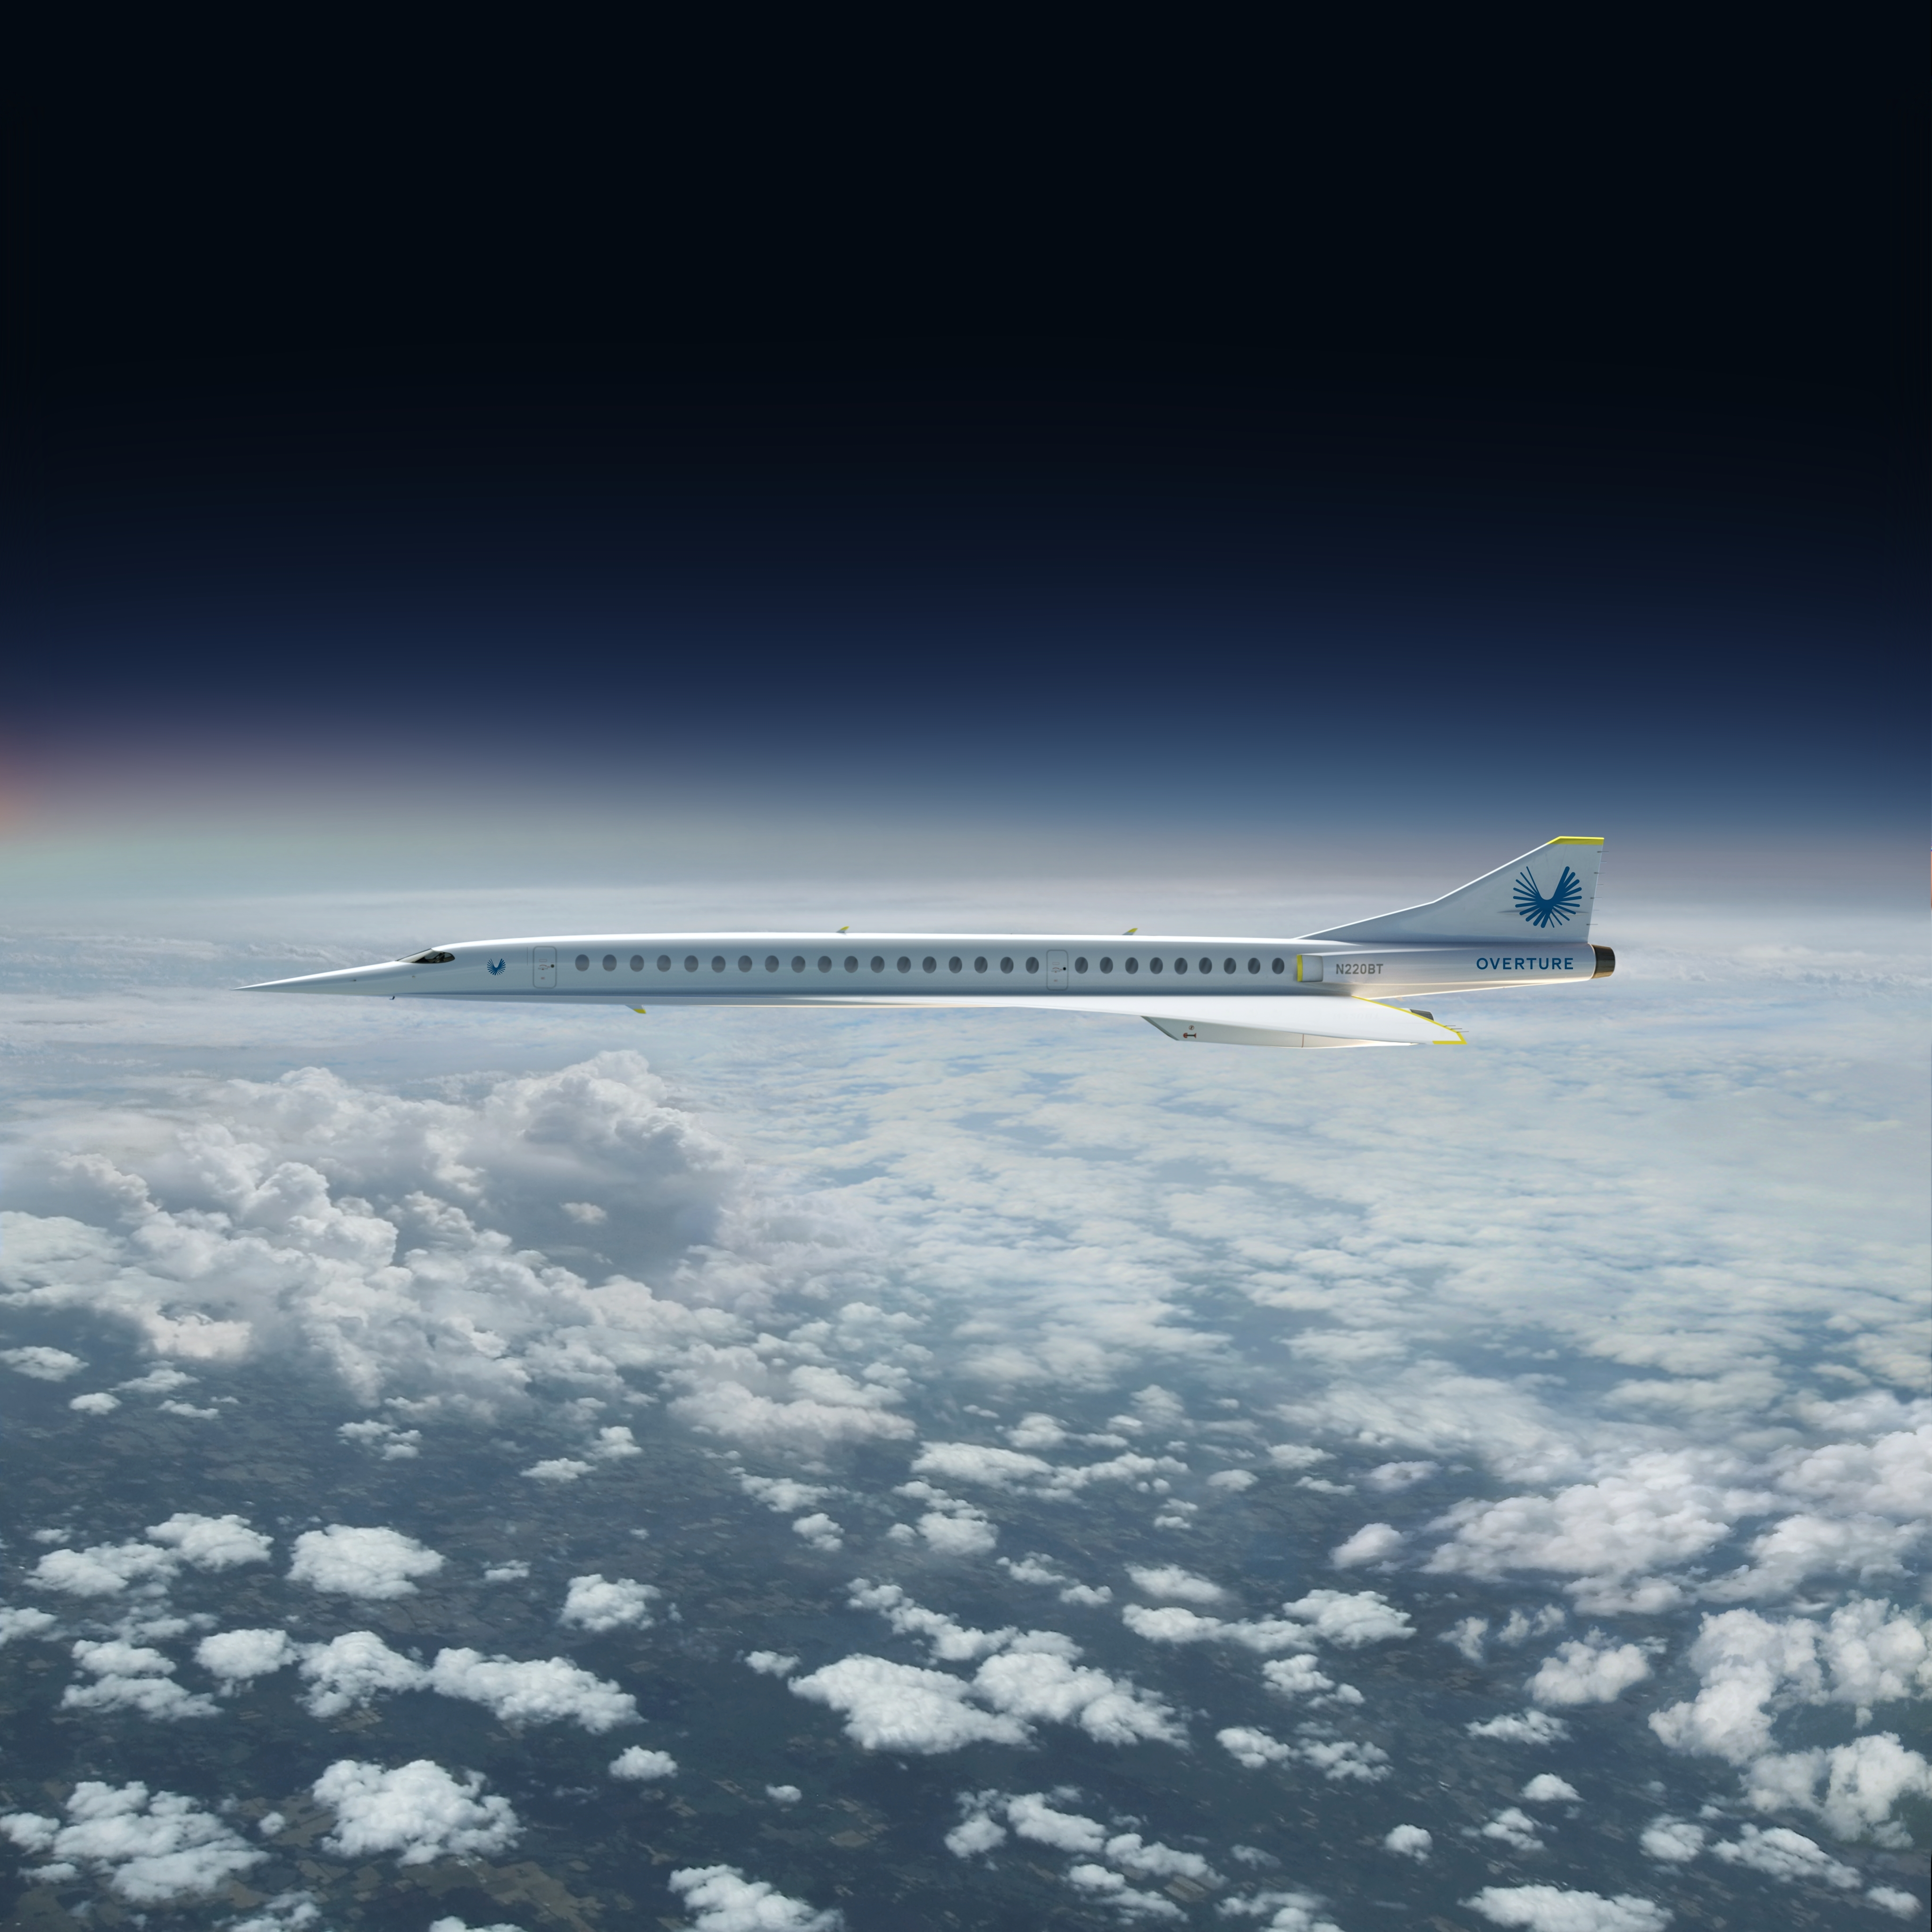 United Airlines' Supersonic Jet Is a Bad Idea